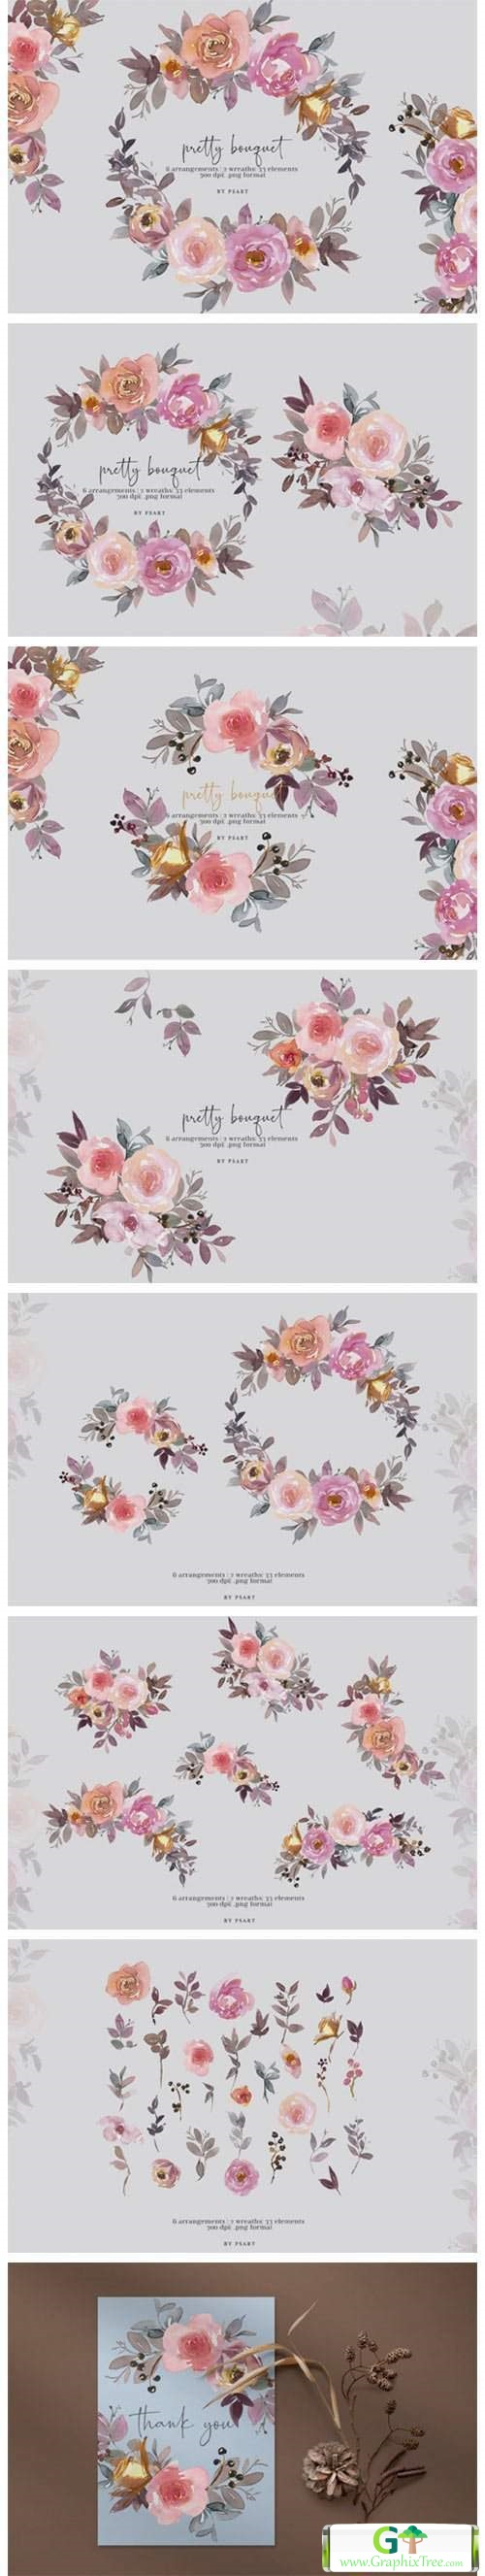 Pretty Bouquet Watercolor Clipart Set [Stock Image] [illustrations]